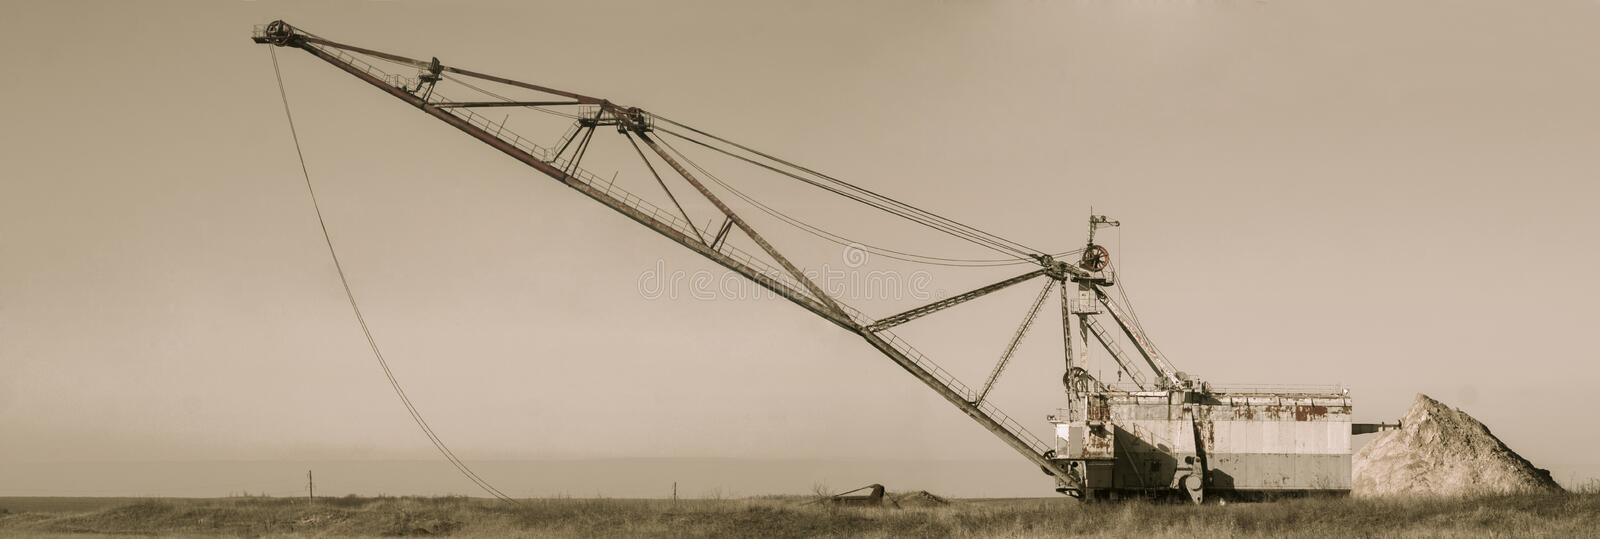 Crane royalty free stock images